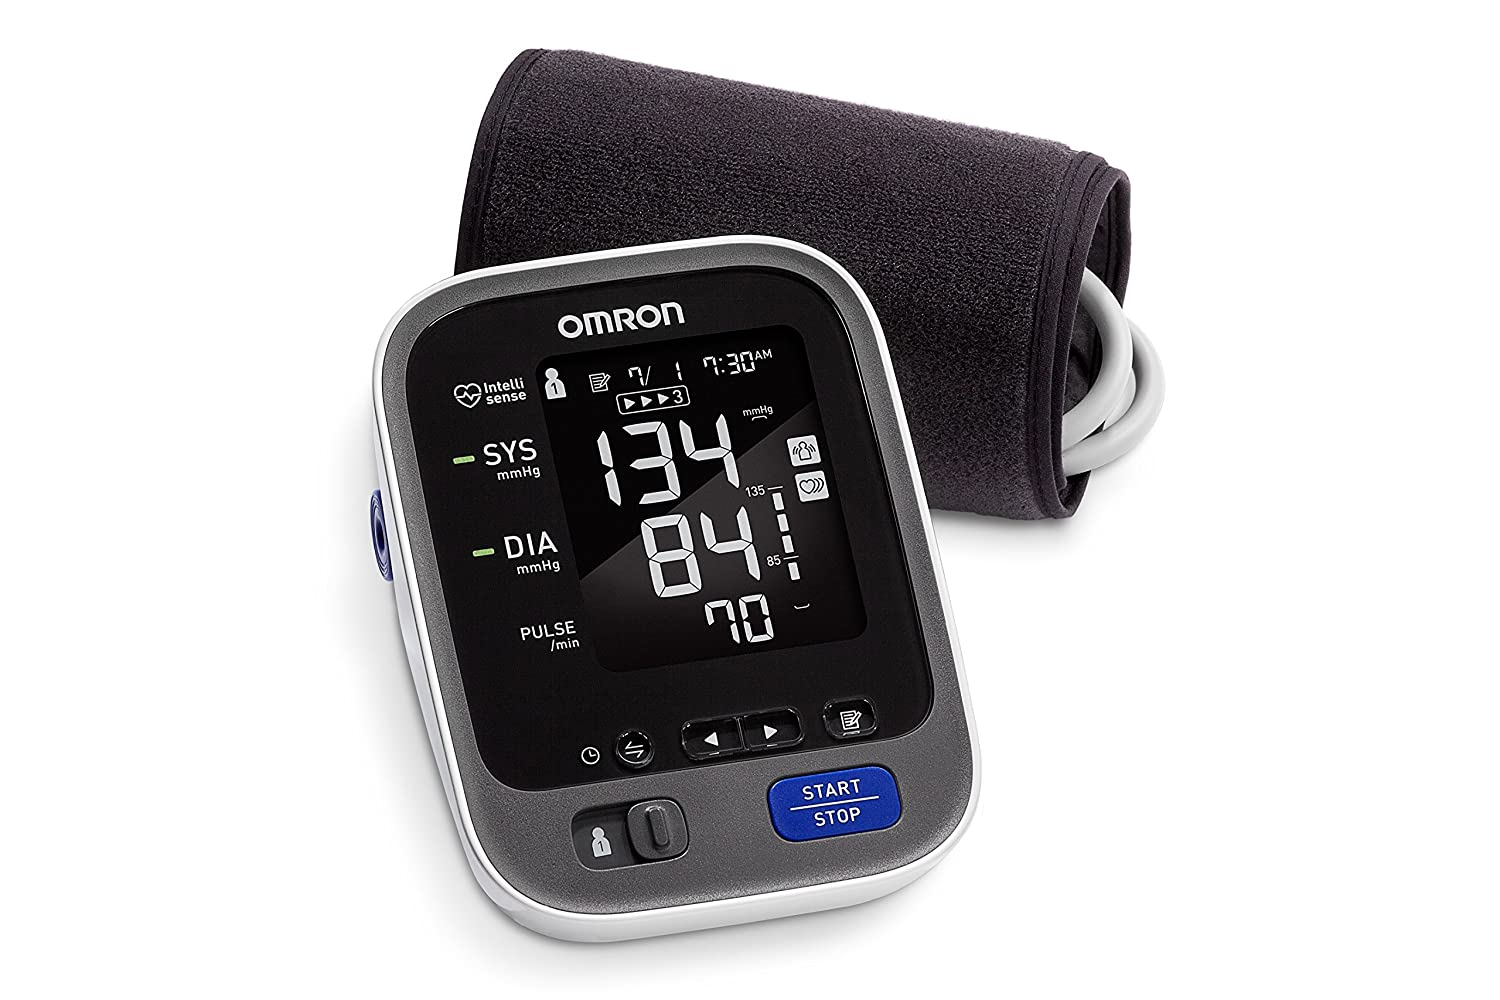 Omron 10 Series Wireless Upper Arm Blood Pressure Monitor; 2-User, 200-Reading Memory, Backlit Display, TruRead Technology, Bluetooth® Works with ...